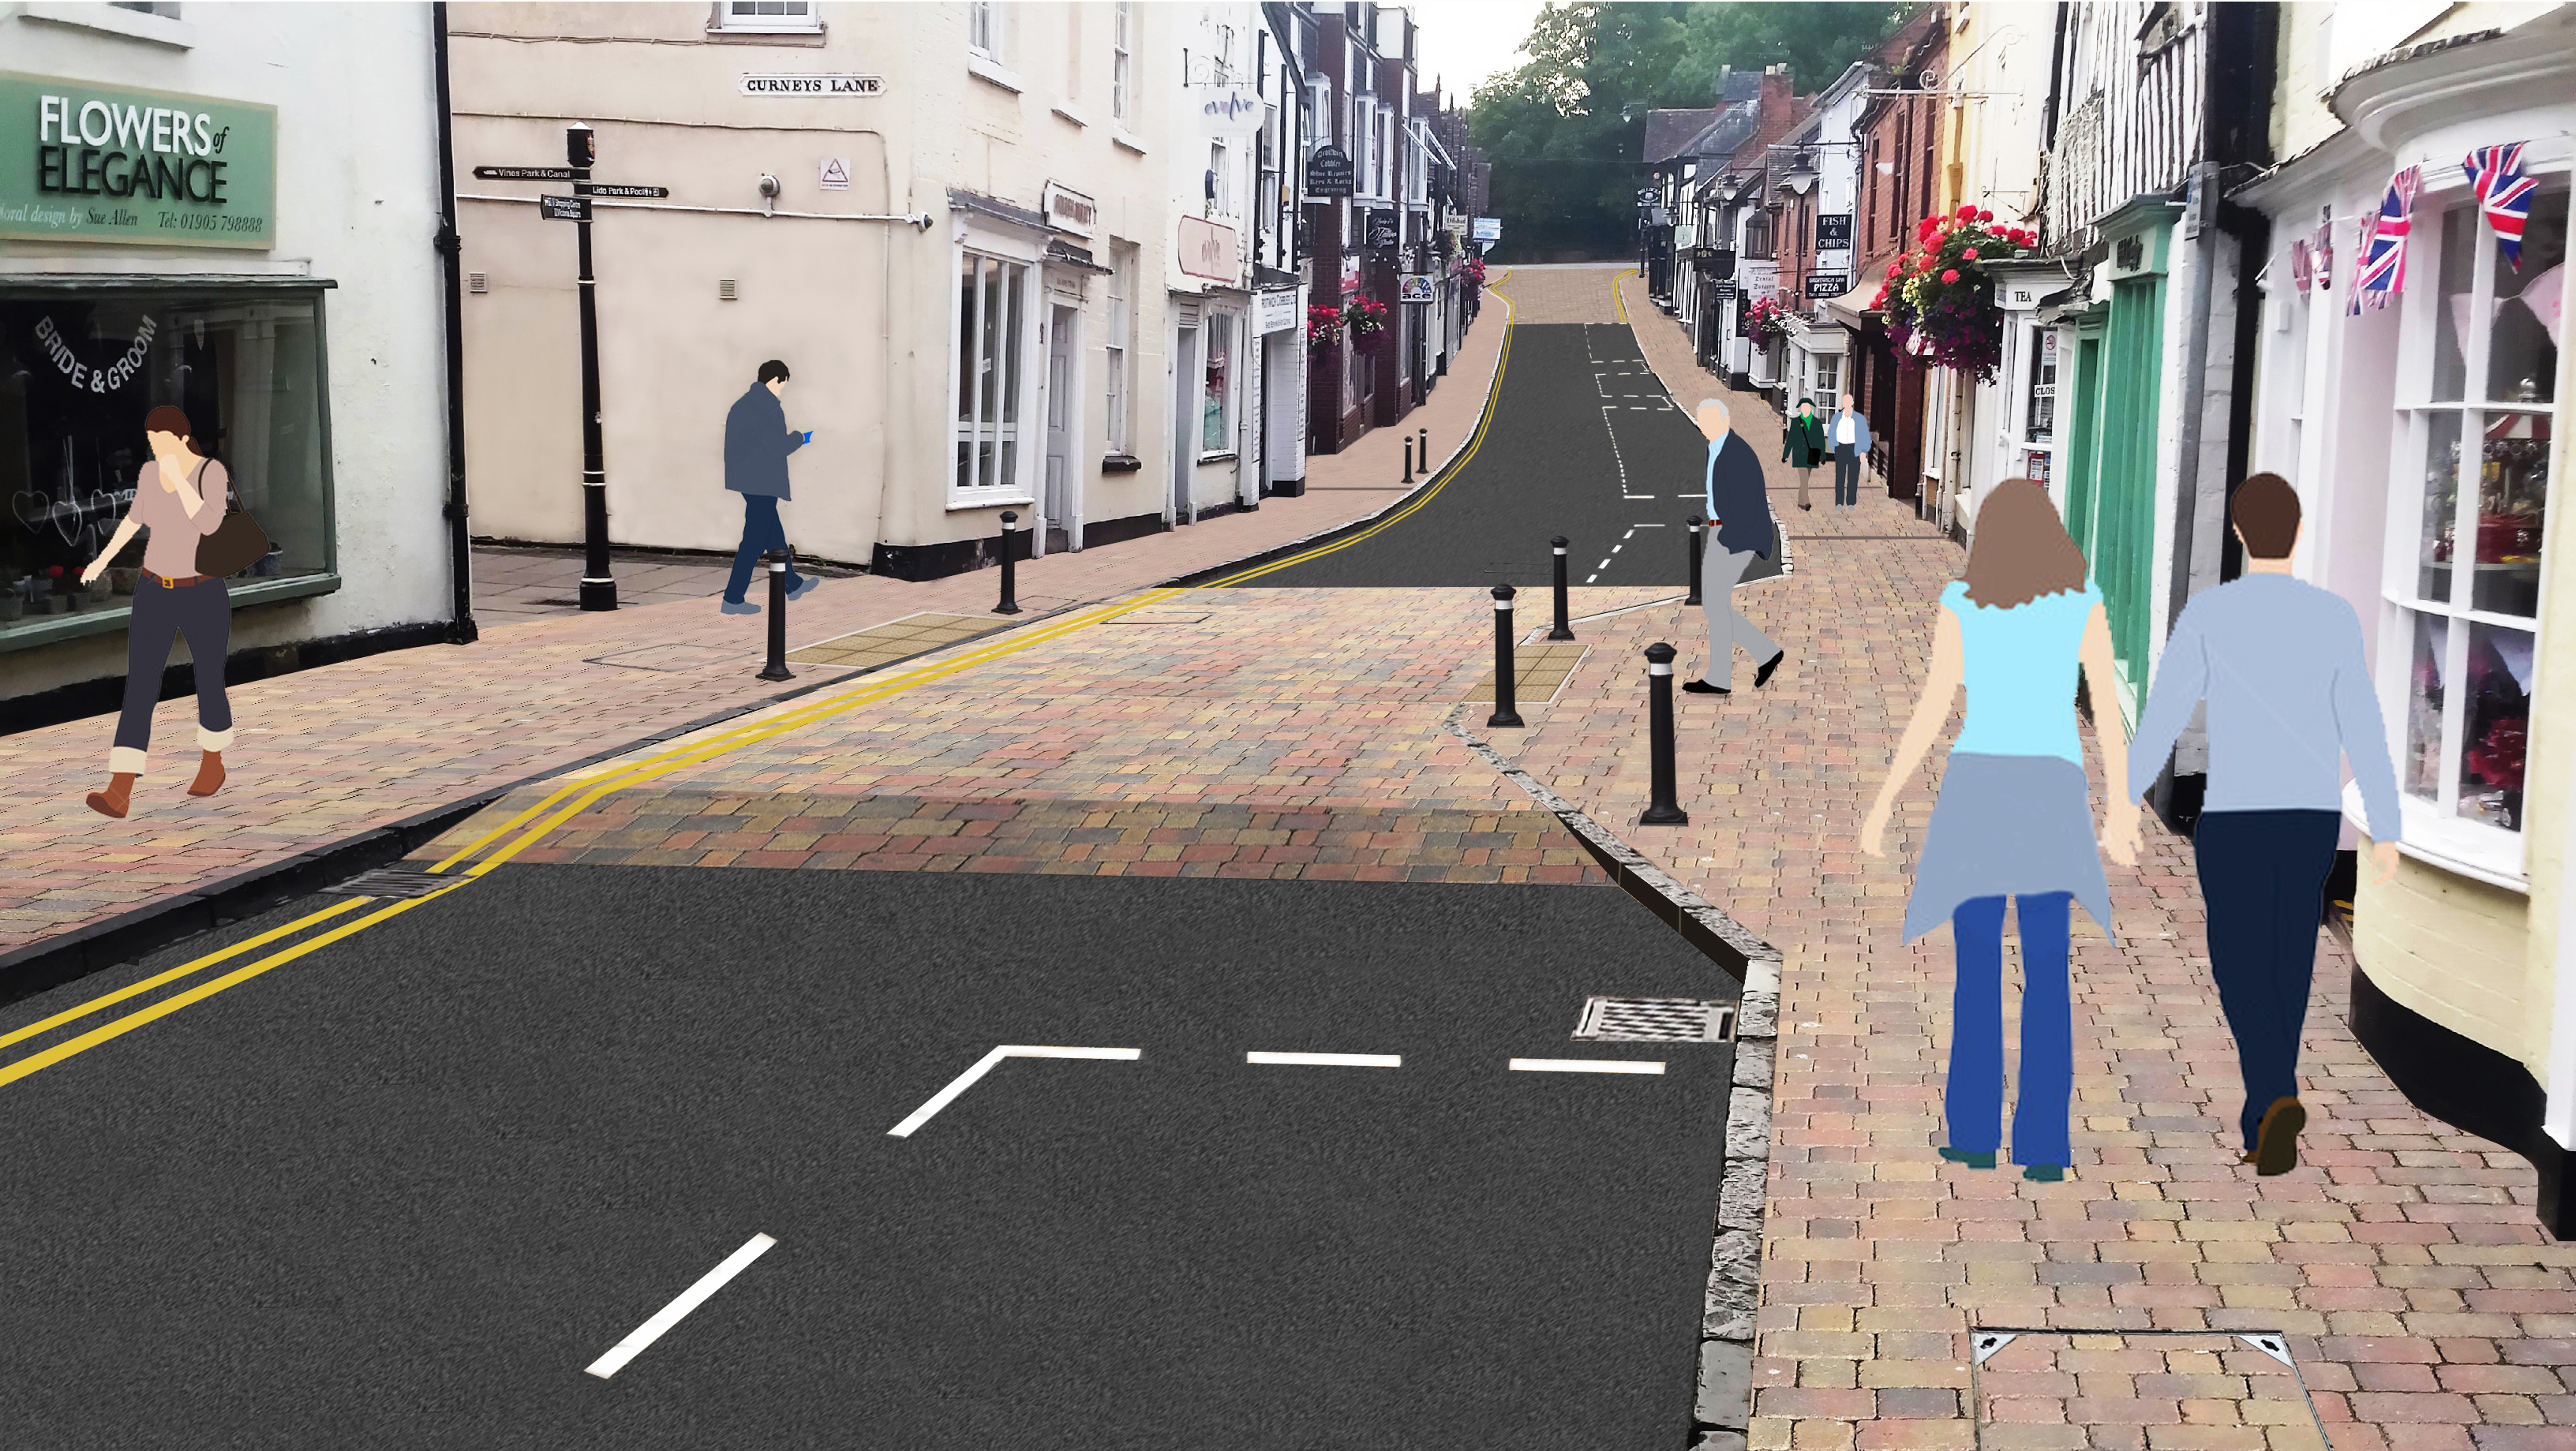 Artist's impression of how the High Street could look following the High Street refurbishment.